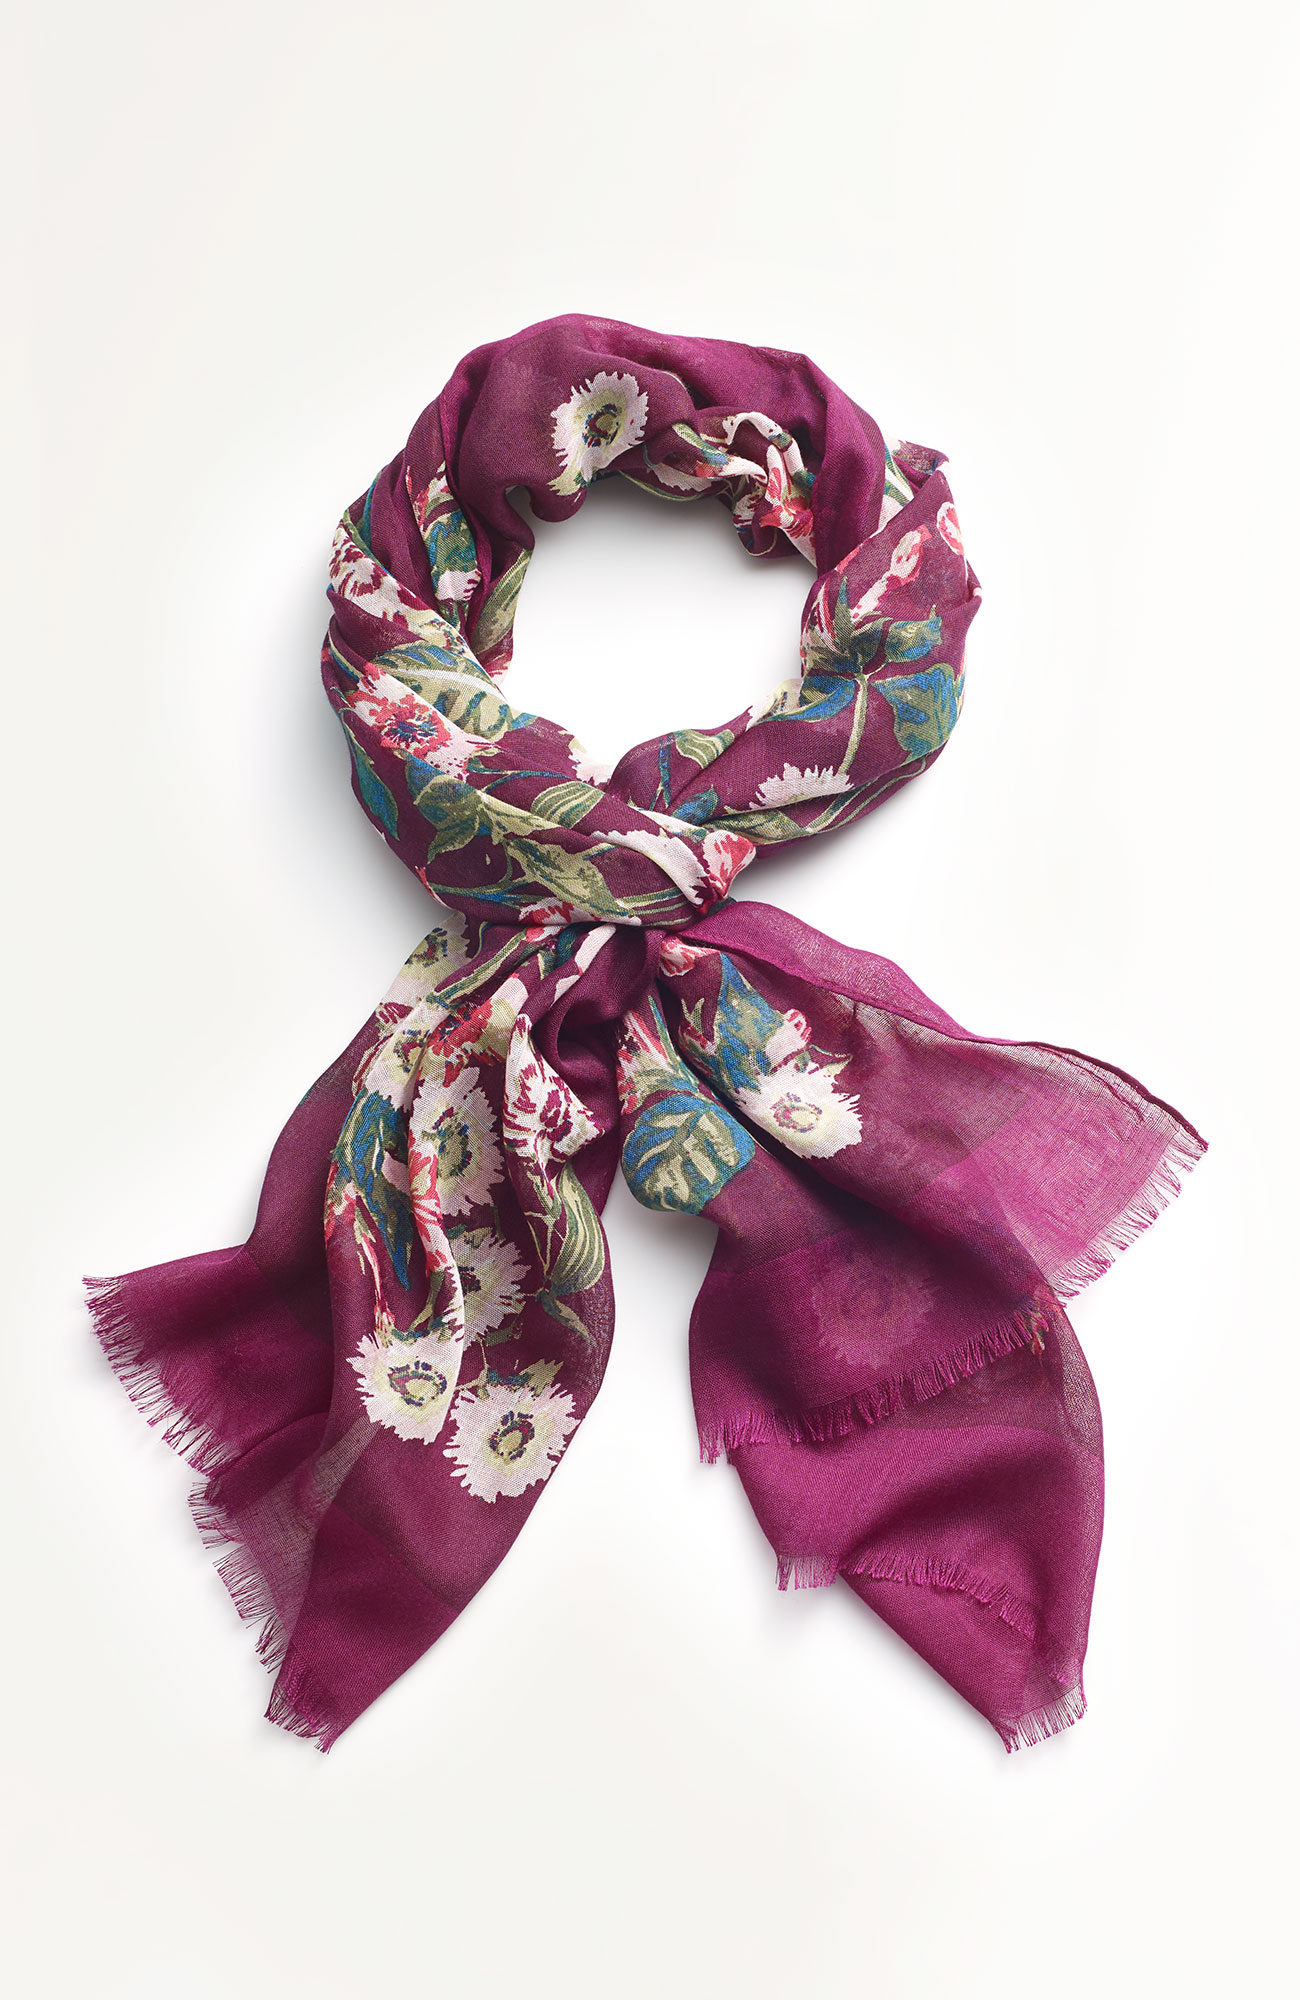 Compassion Fund floral scarf